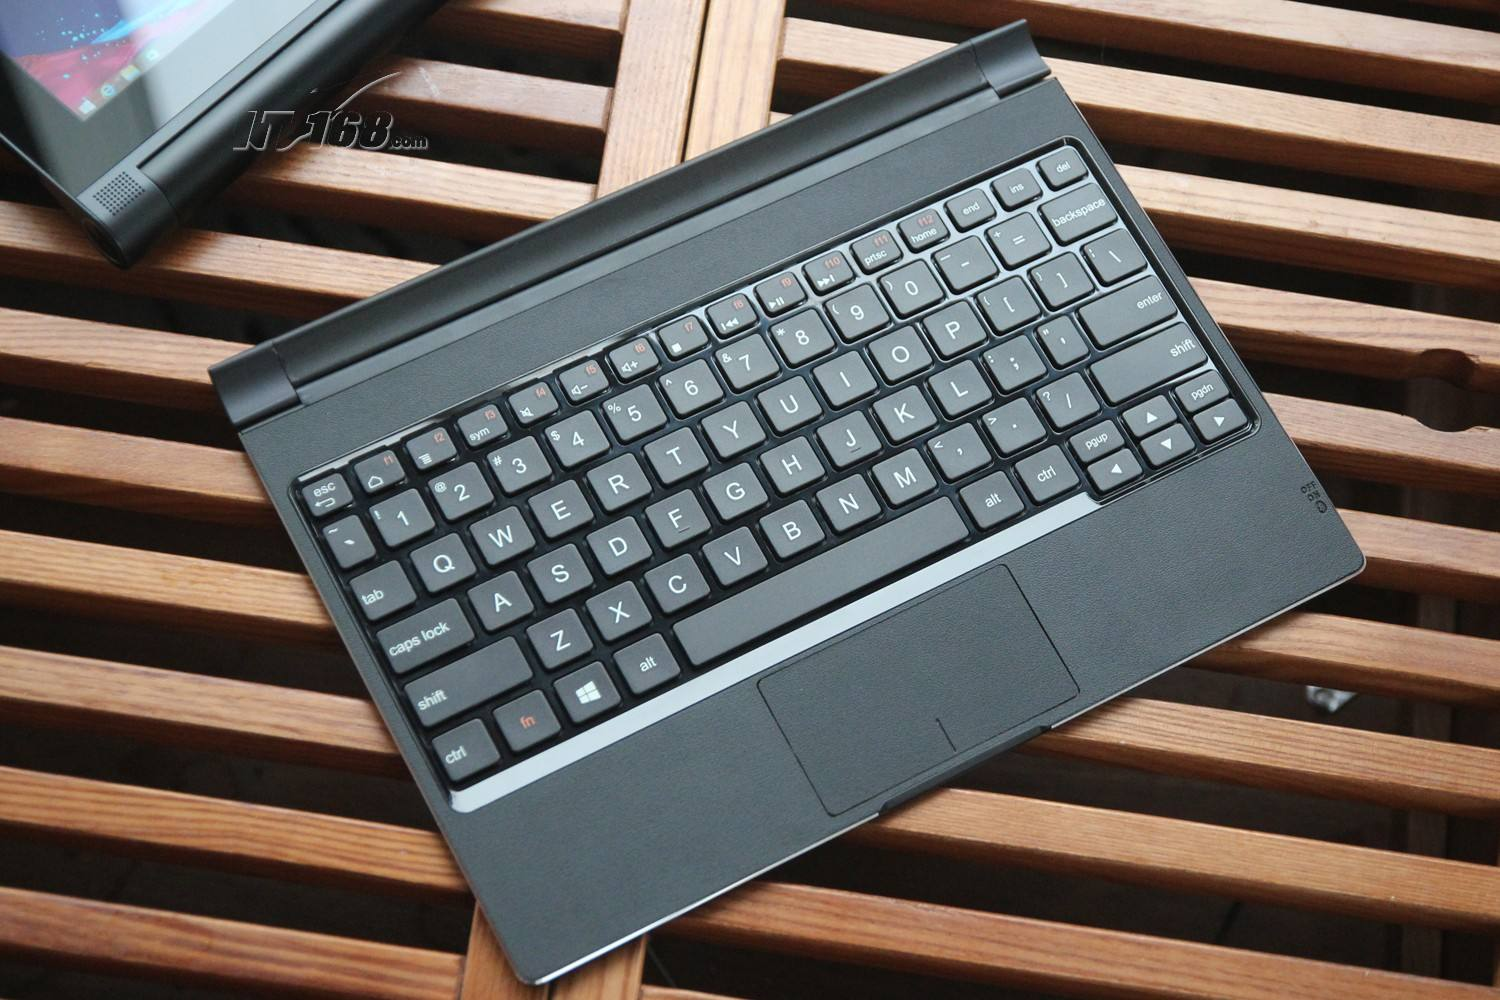 Lenovo Lenovo Yoga tablet 2 special Bluetooth keyboard with its own charging pool bkc800 bkc900